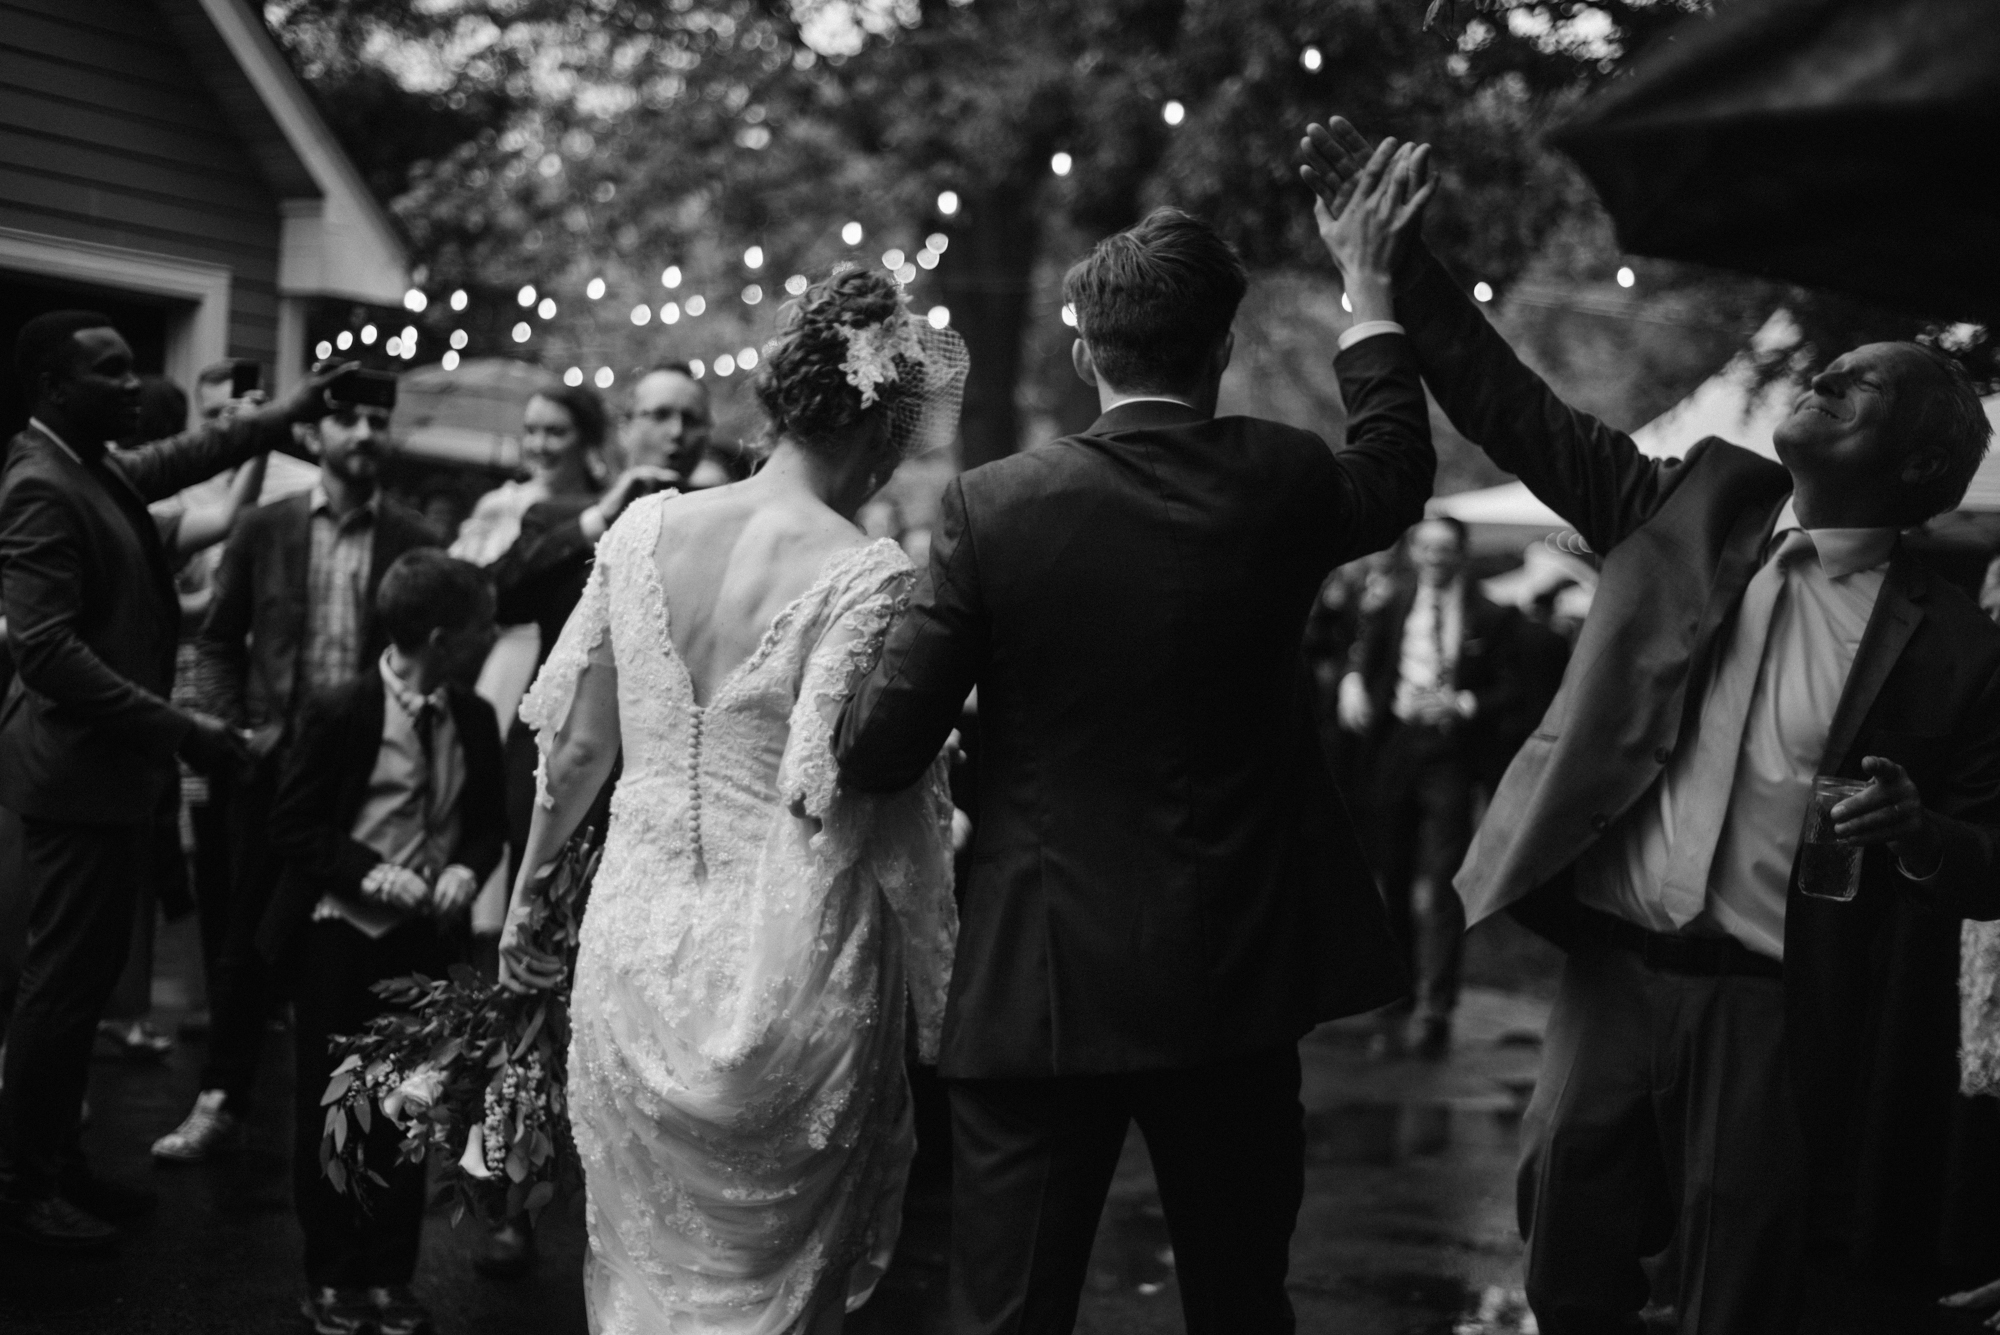 Mairi and Jude - Rainy Backyard Wedding - Intimate Wedding - Fun Reception Photos - Chicago Wedding Photographer - Catholic Wedding - White Sails Creative - Virginia Backyard Wedding Photographer_86.jpg